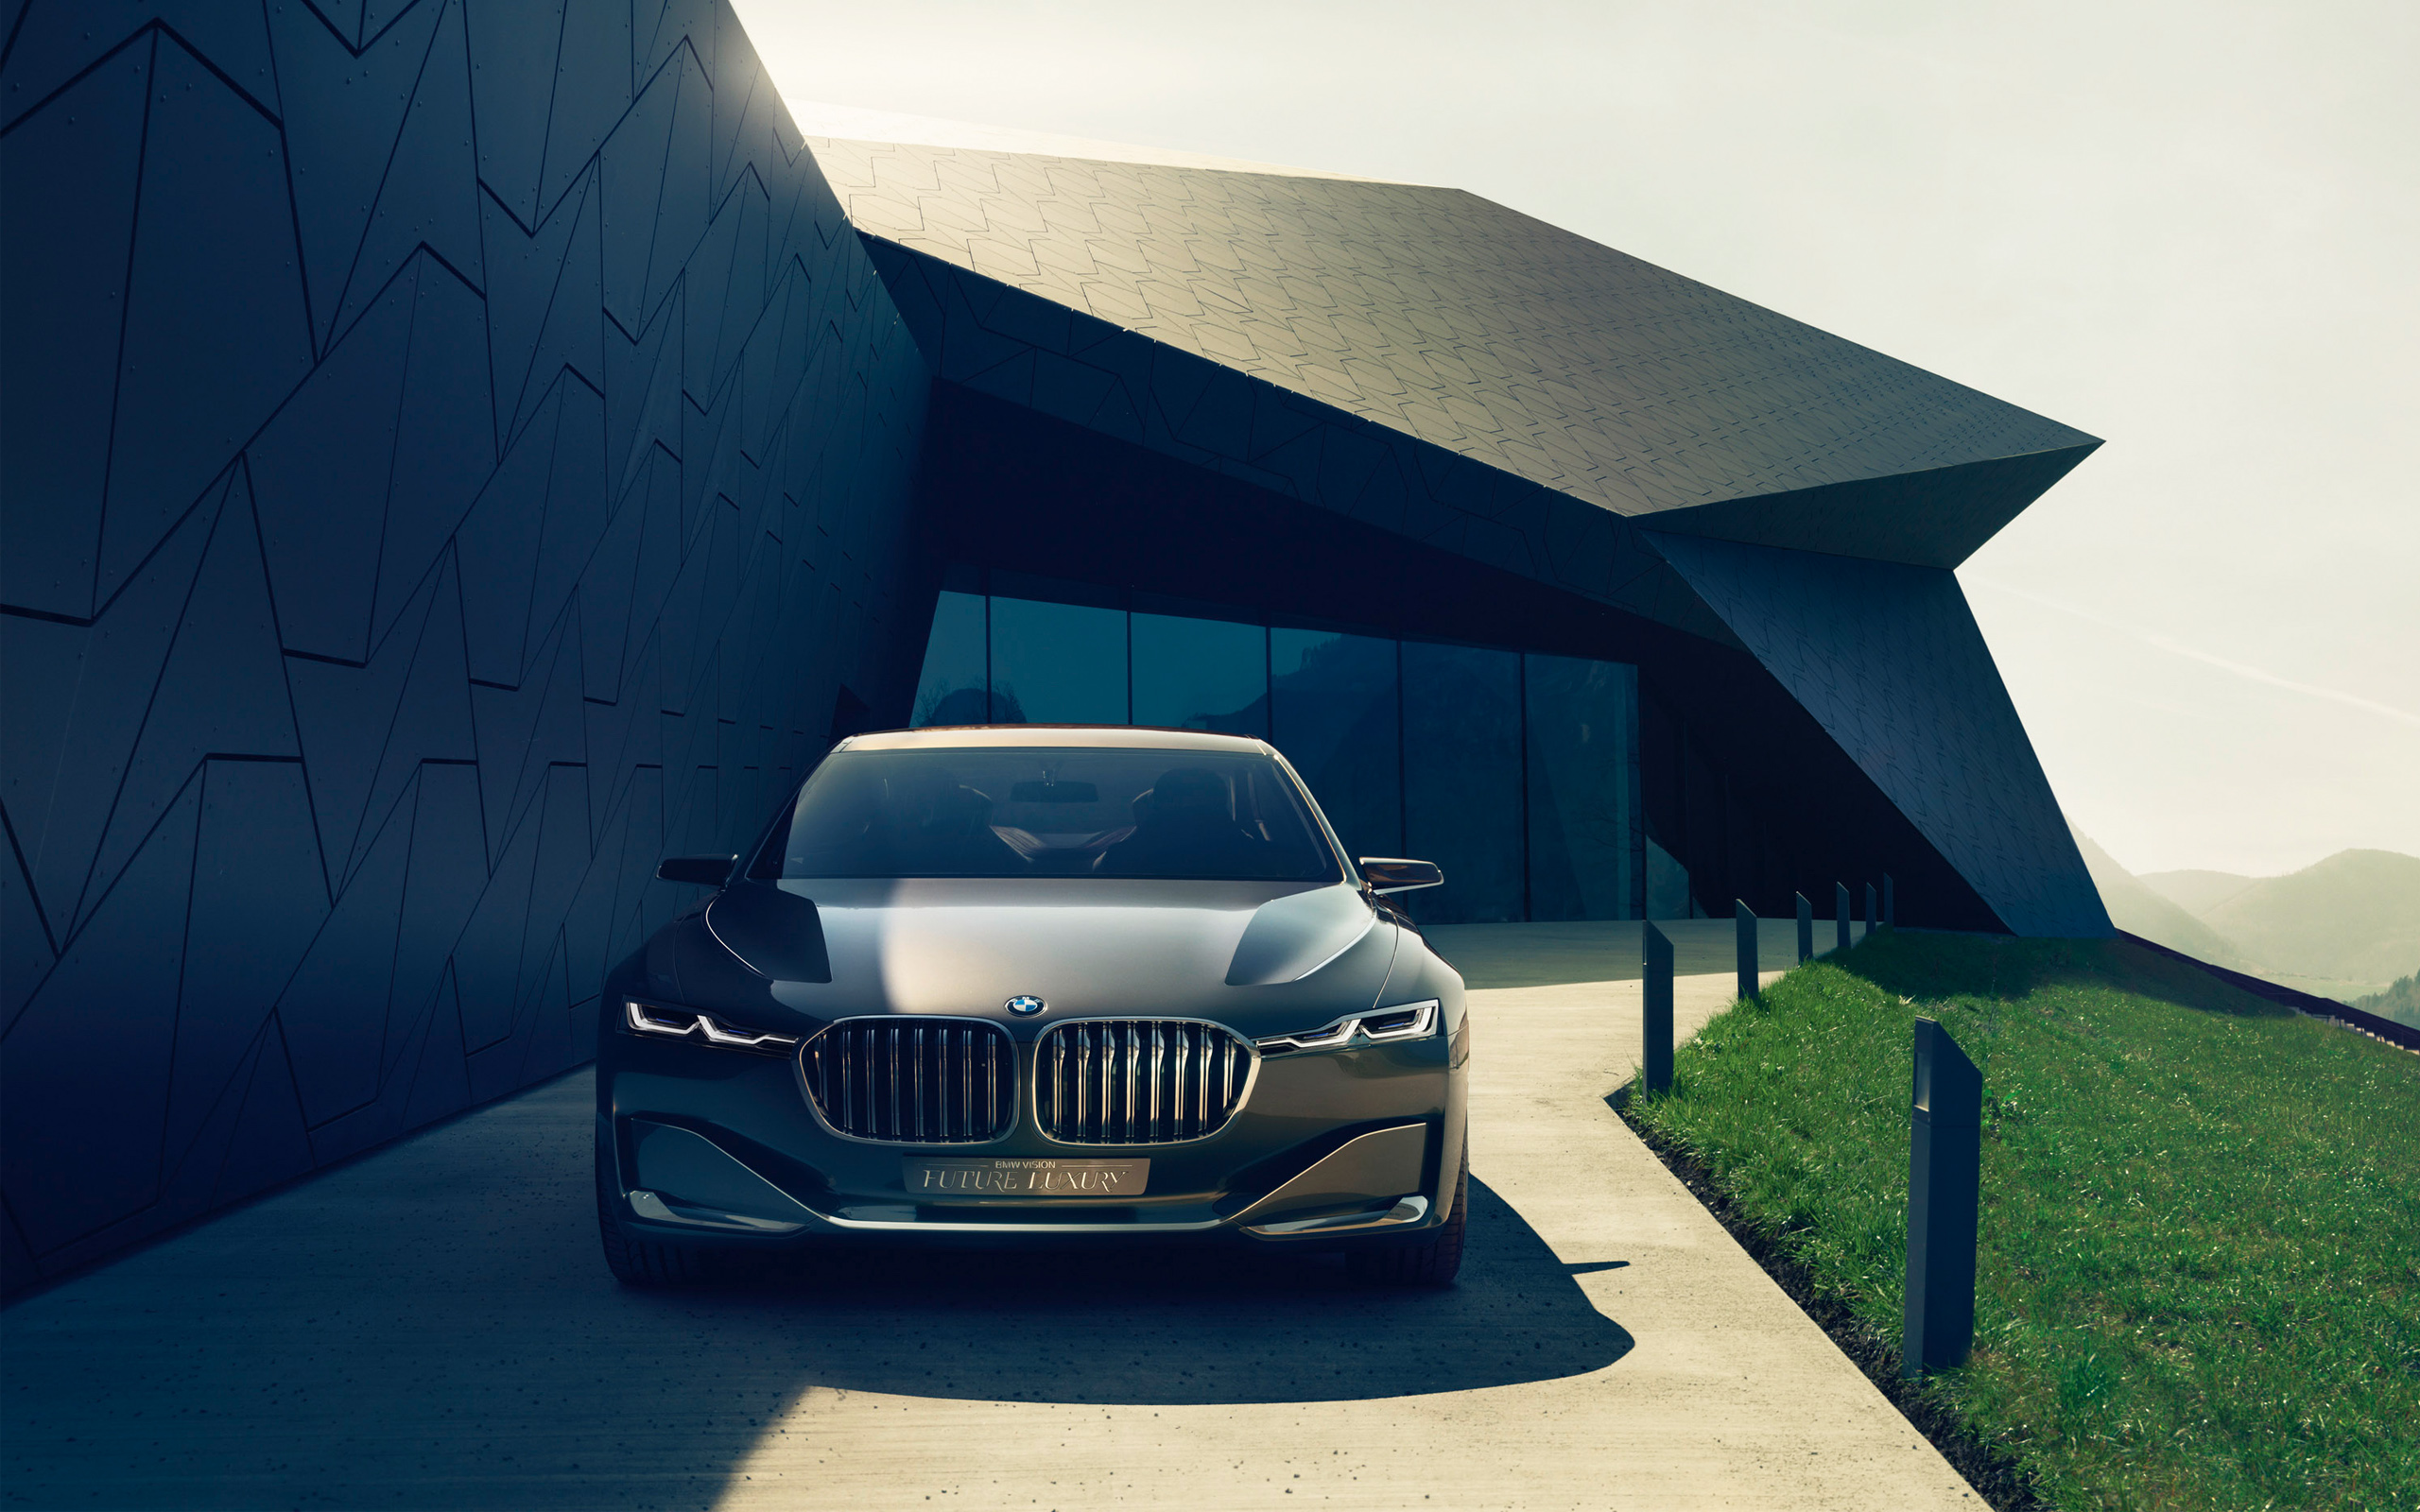 BMW Vision Future Luxury Car wallpaper